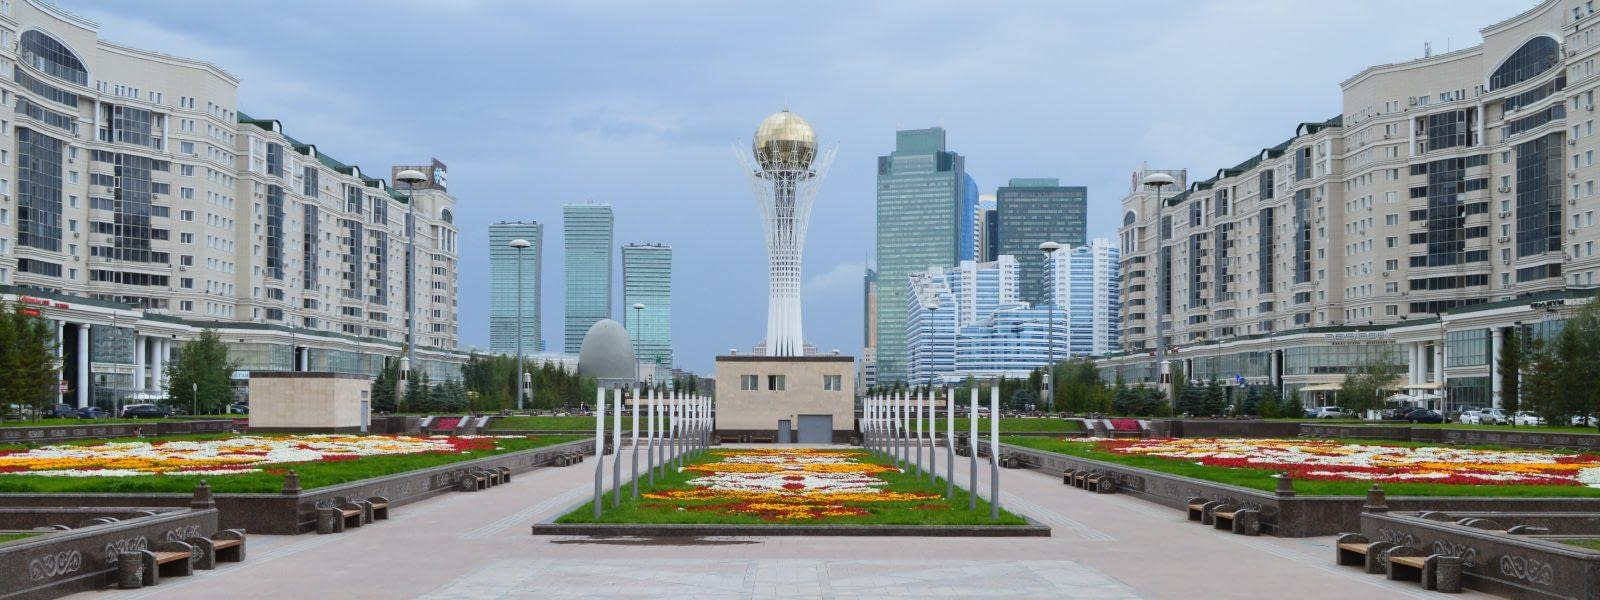 Nur-Sultan, Kazakhstan Best Things to do